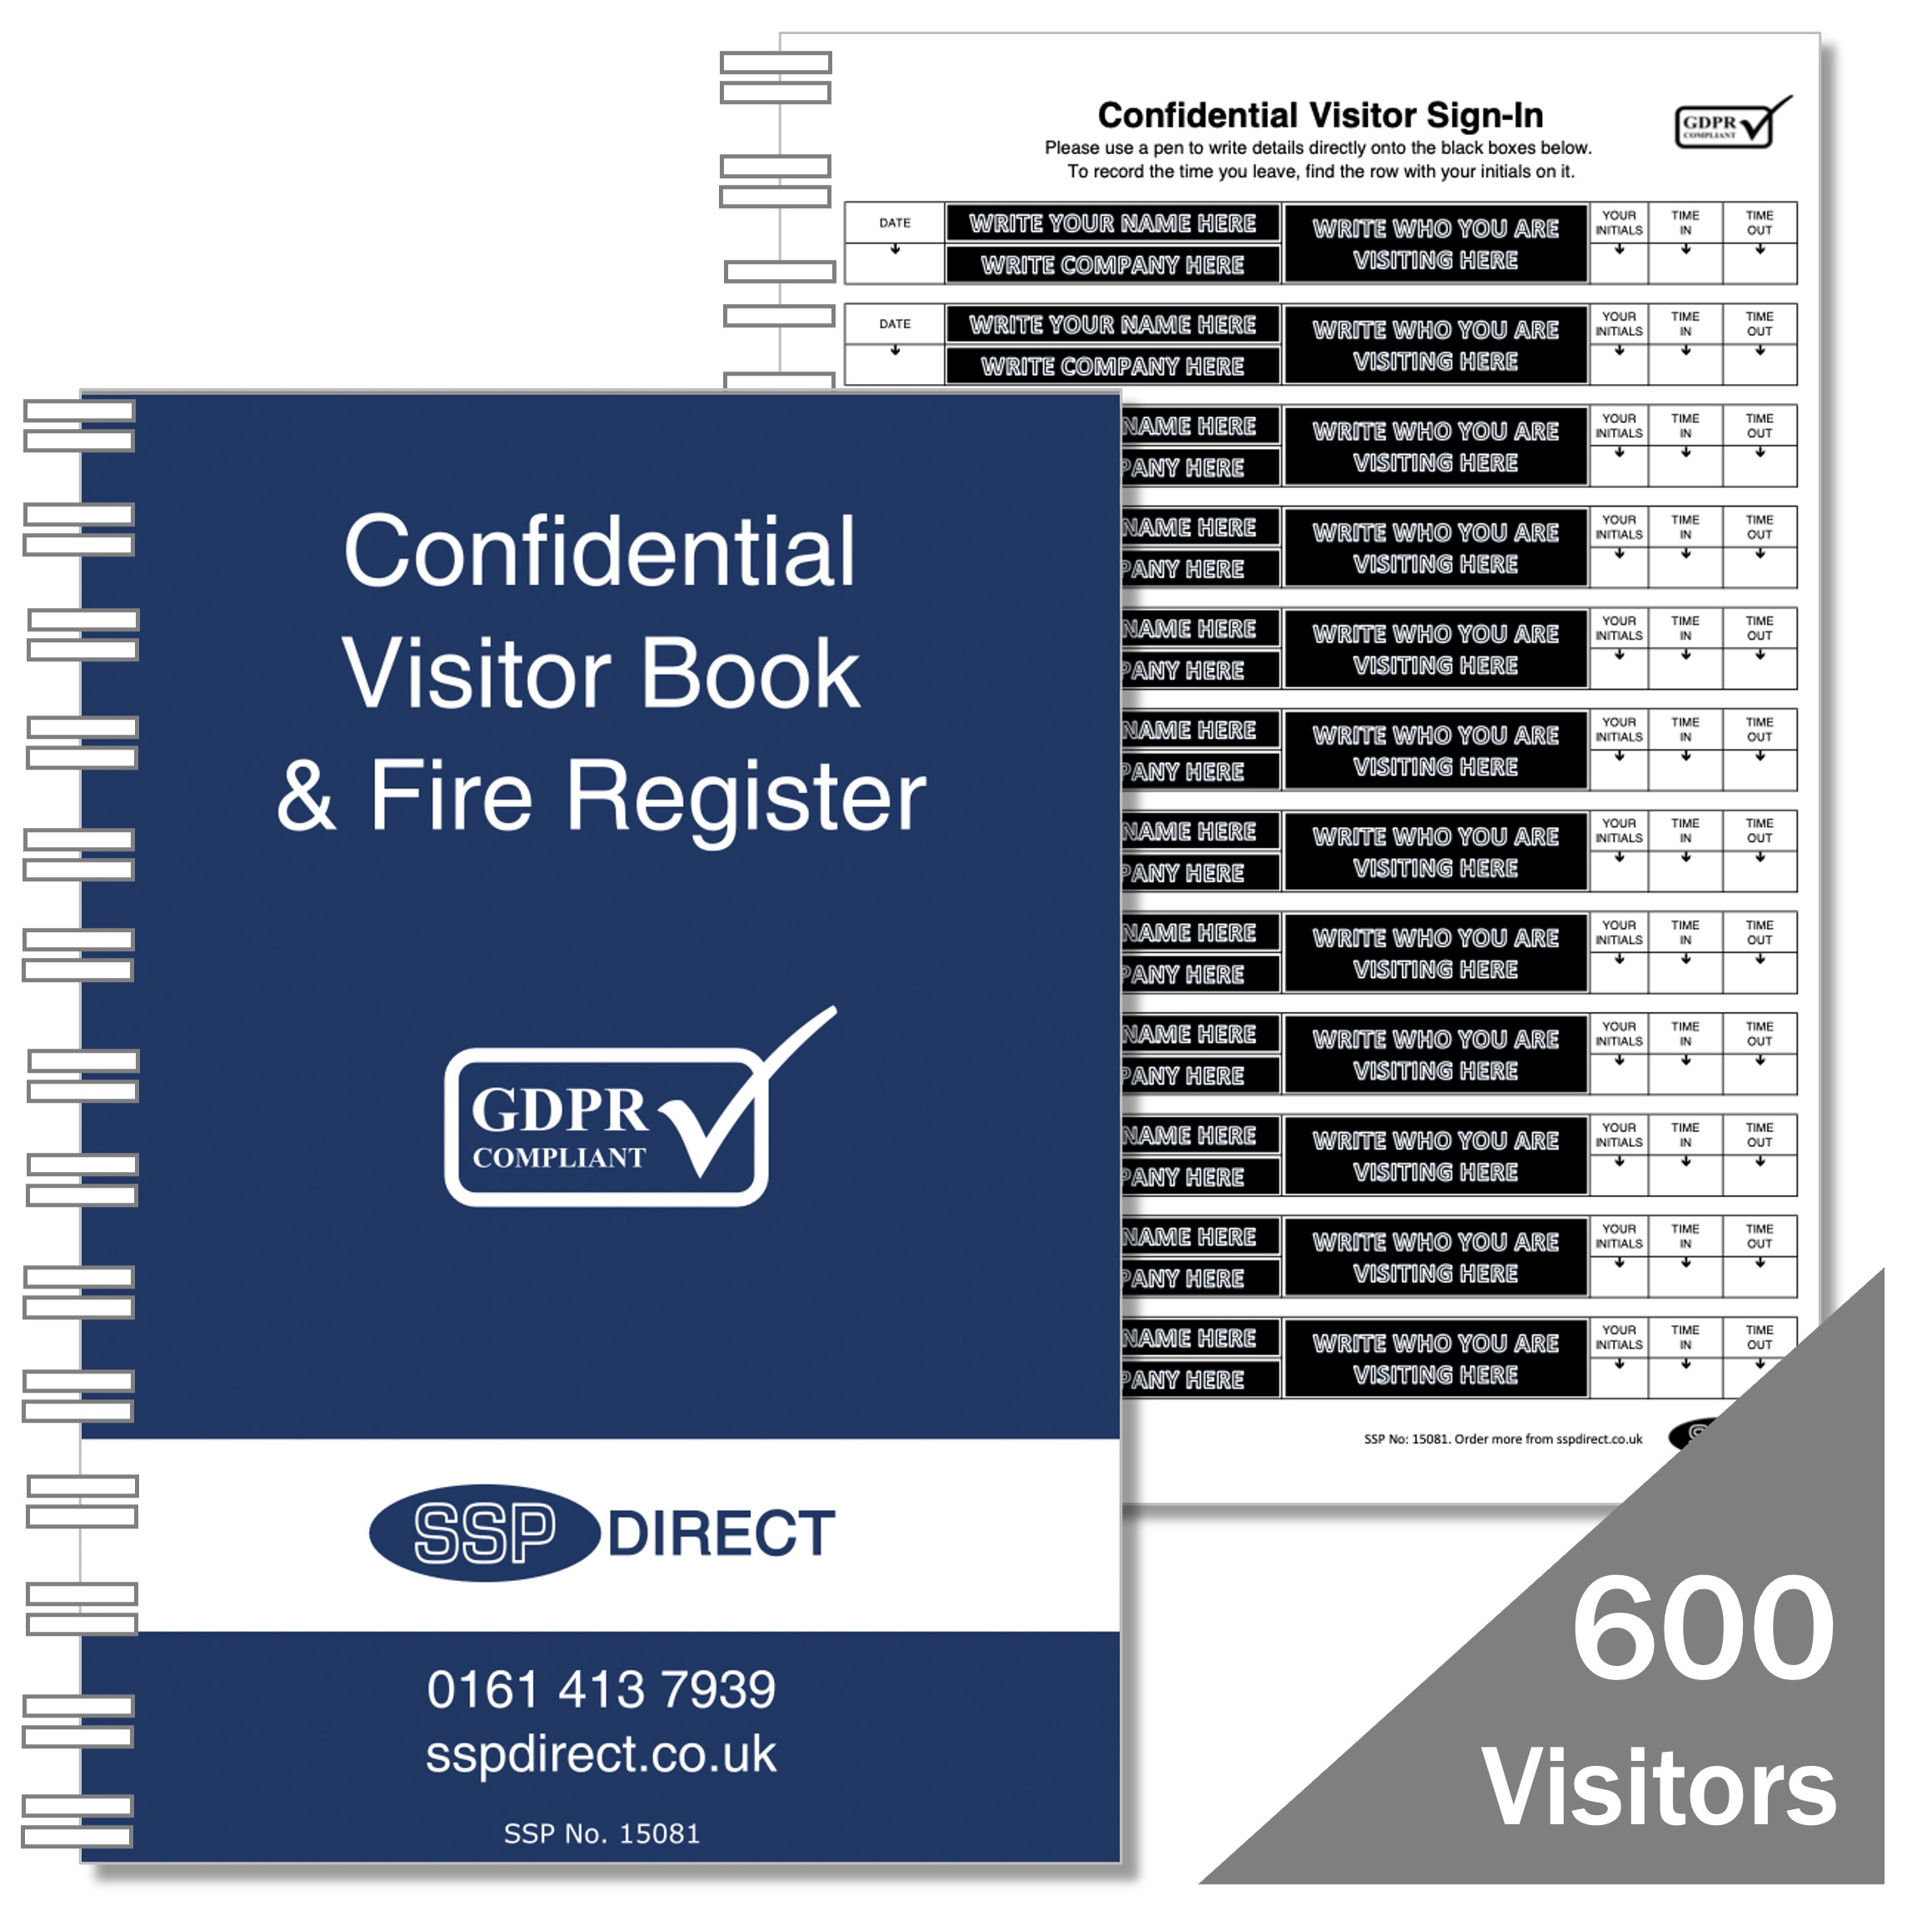 GDPR Confidential Visitor Book